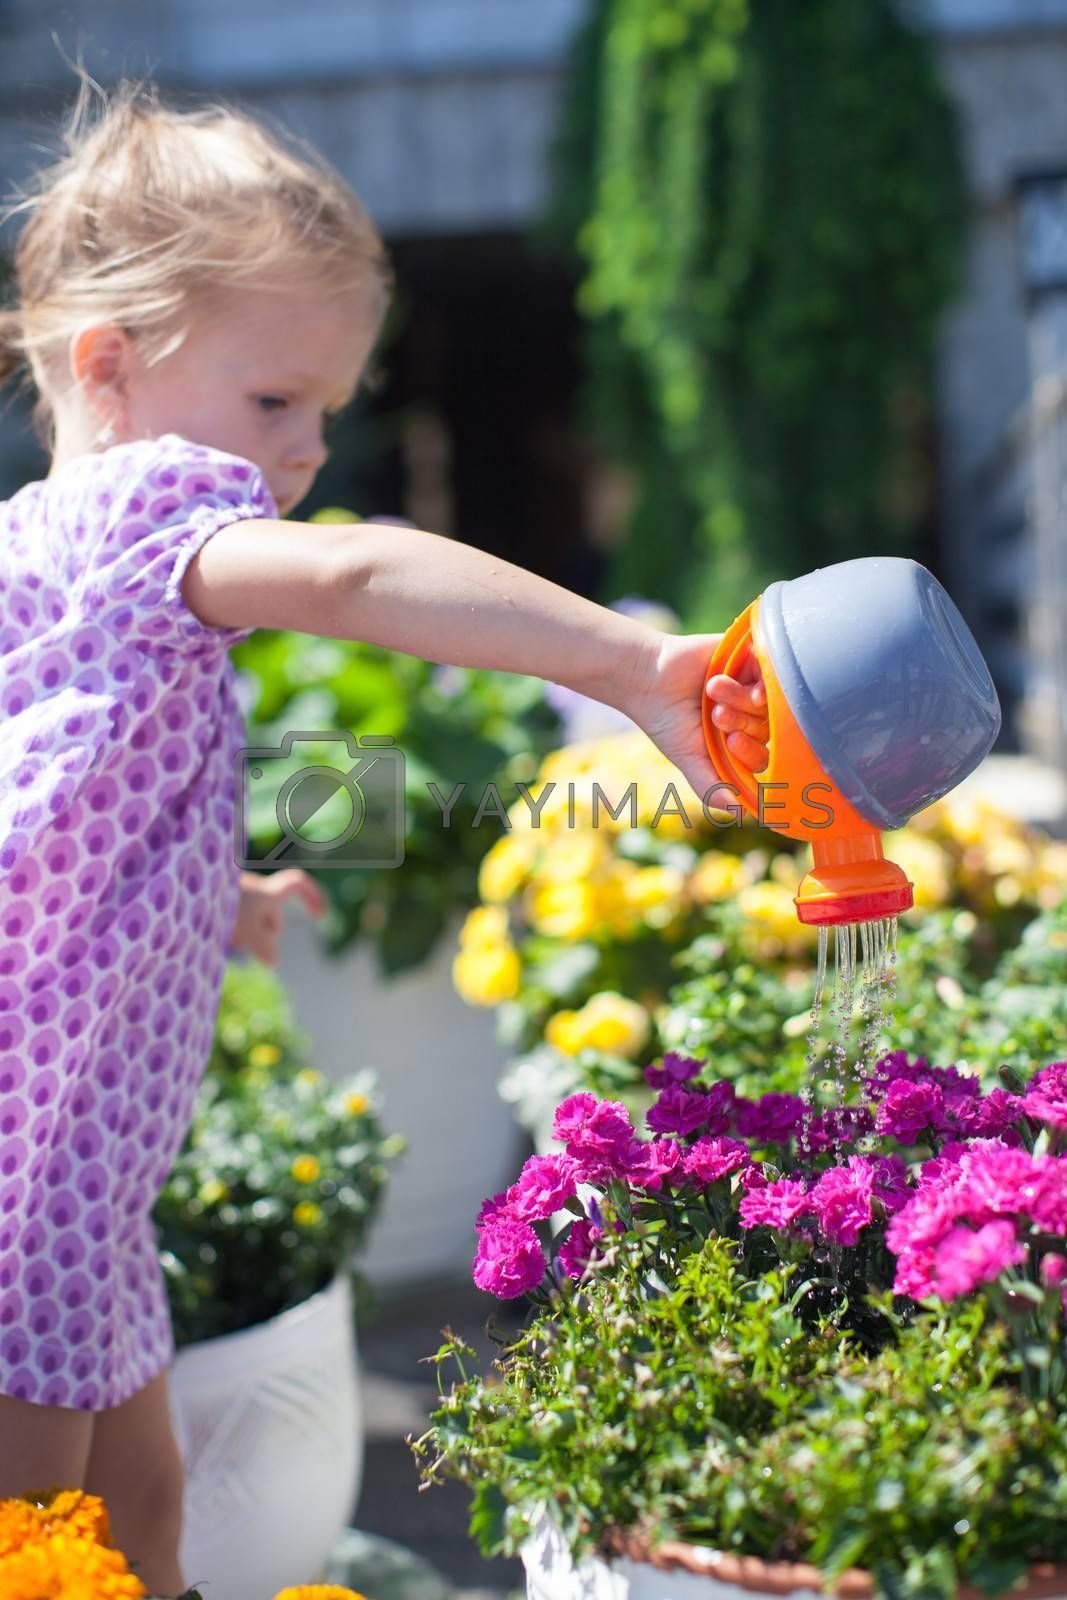 Royalty free image of Little cute girl watering flowers with a watering can by travnikovstudio